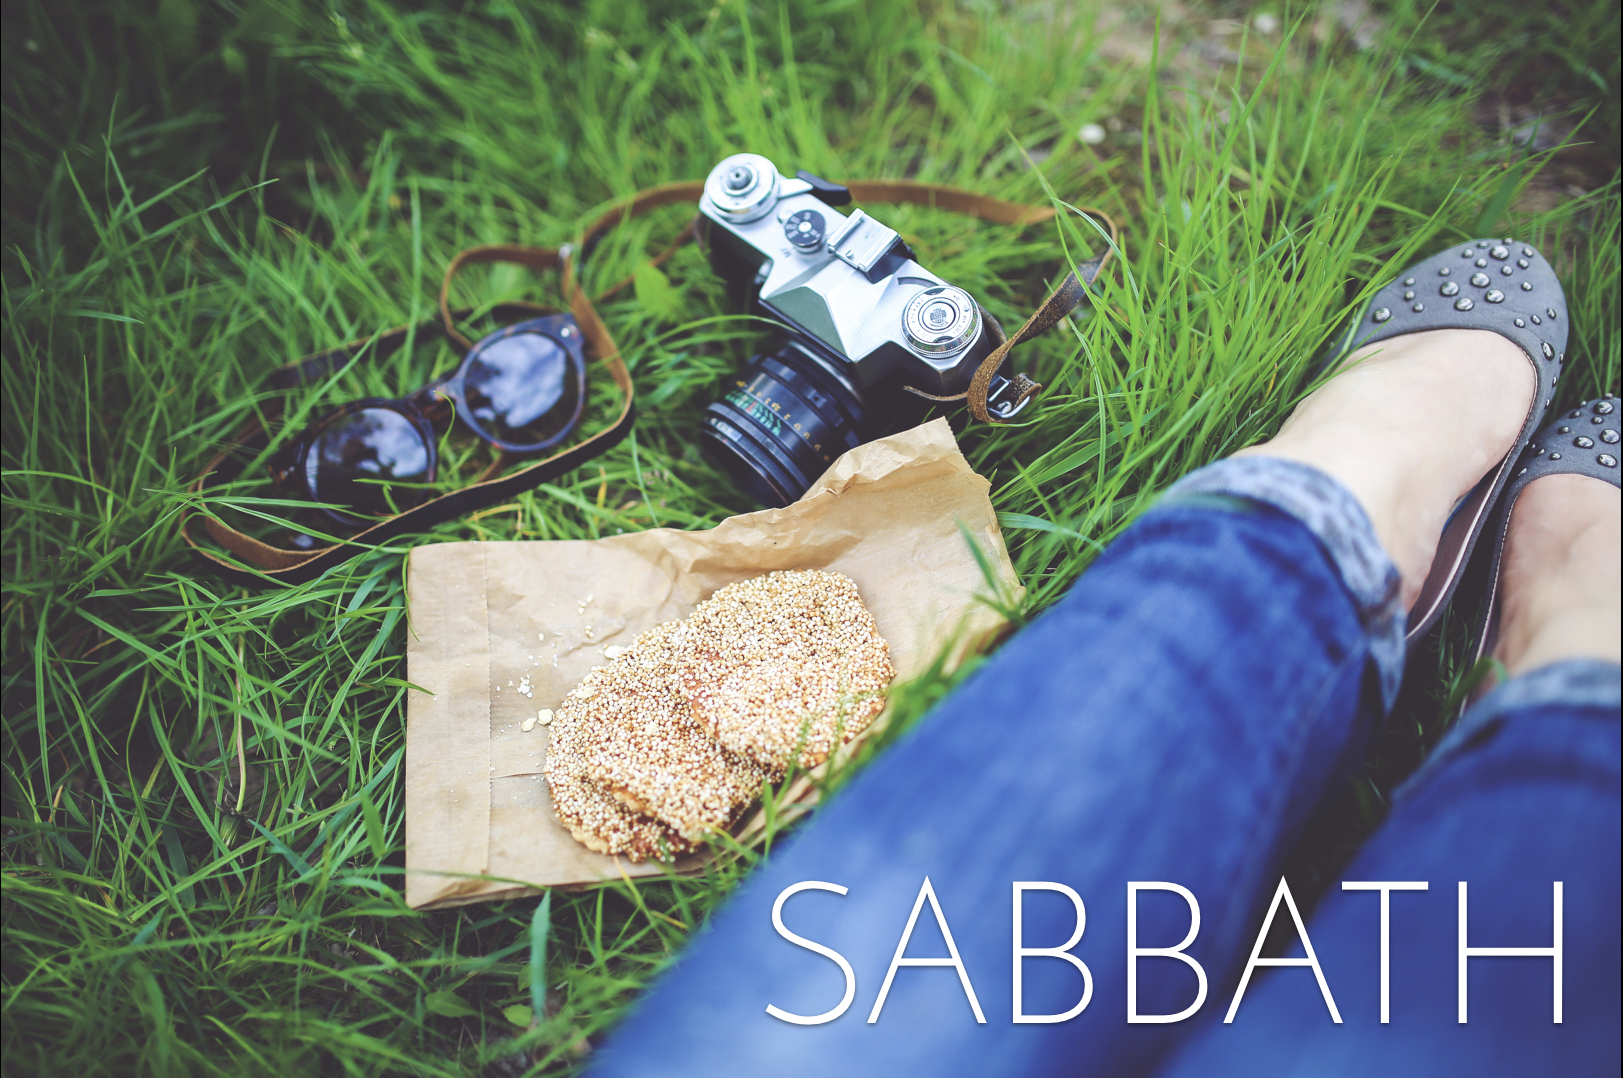 Sabbath: God's Gift